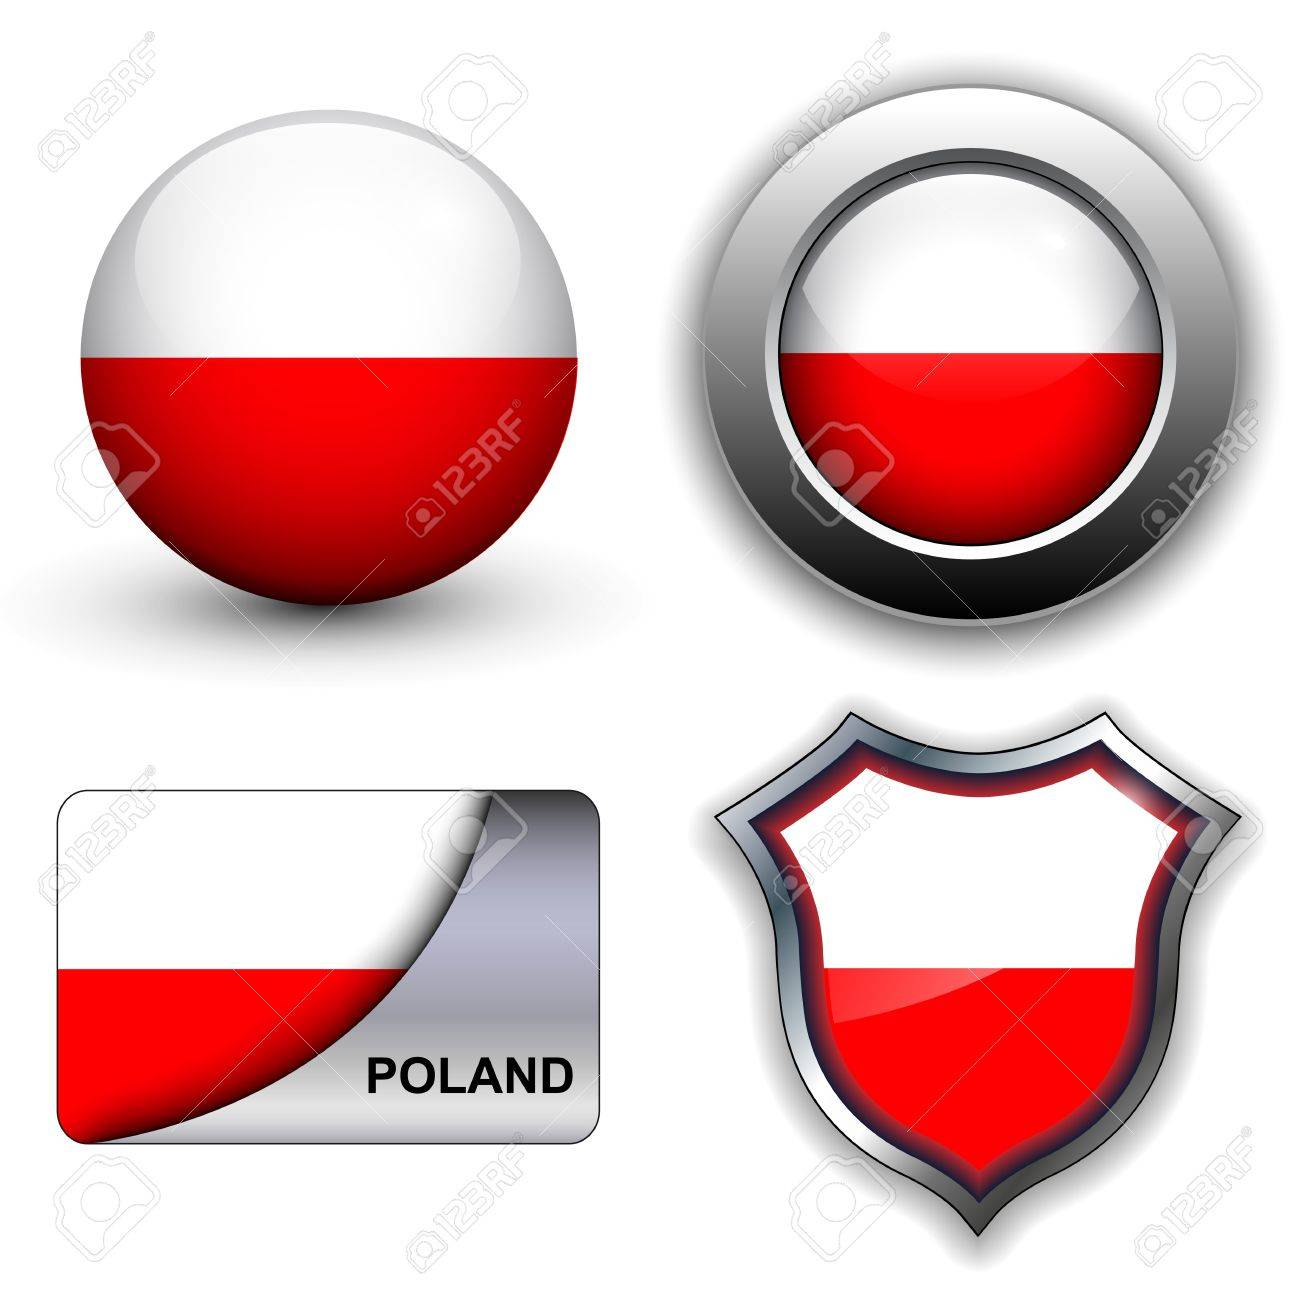 polish flag stock photos royalty free polish flag images and pictures